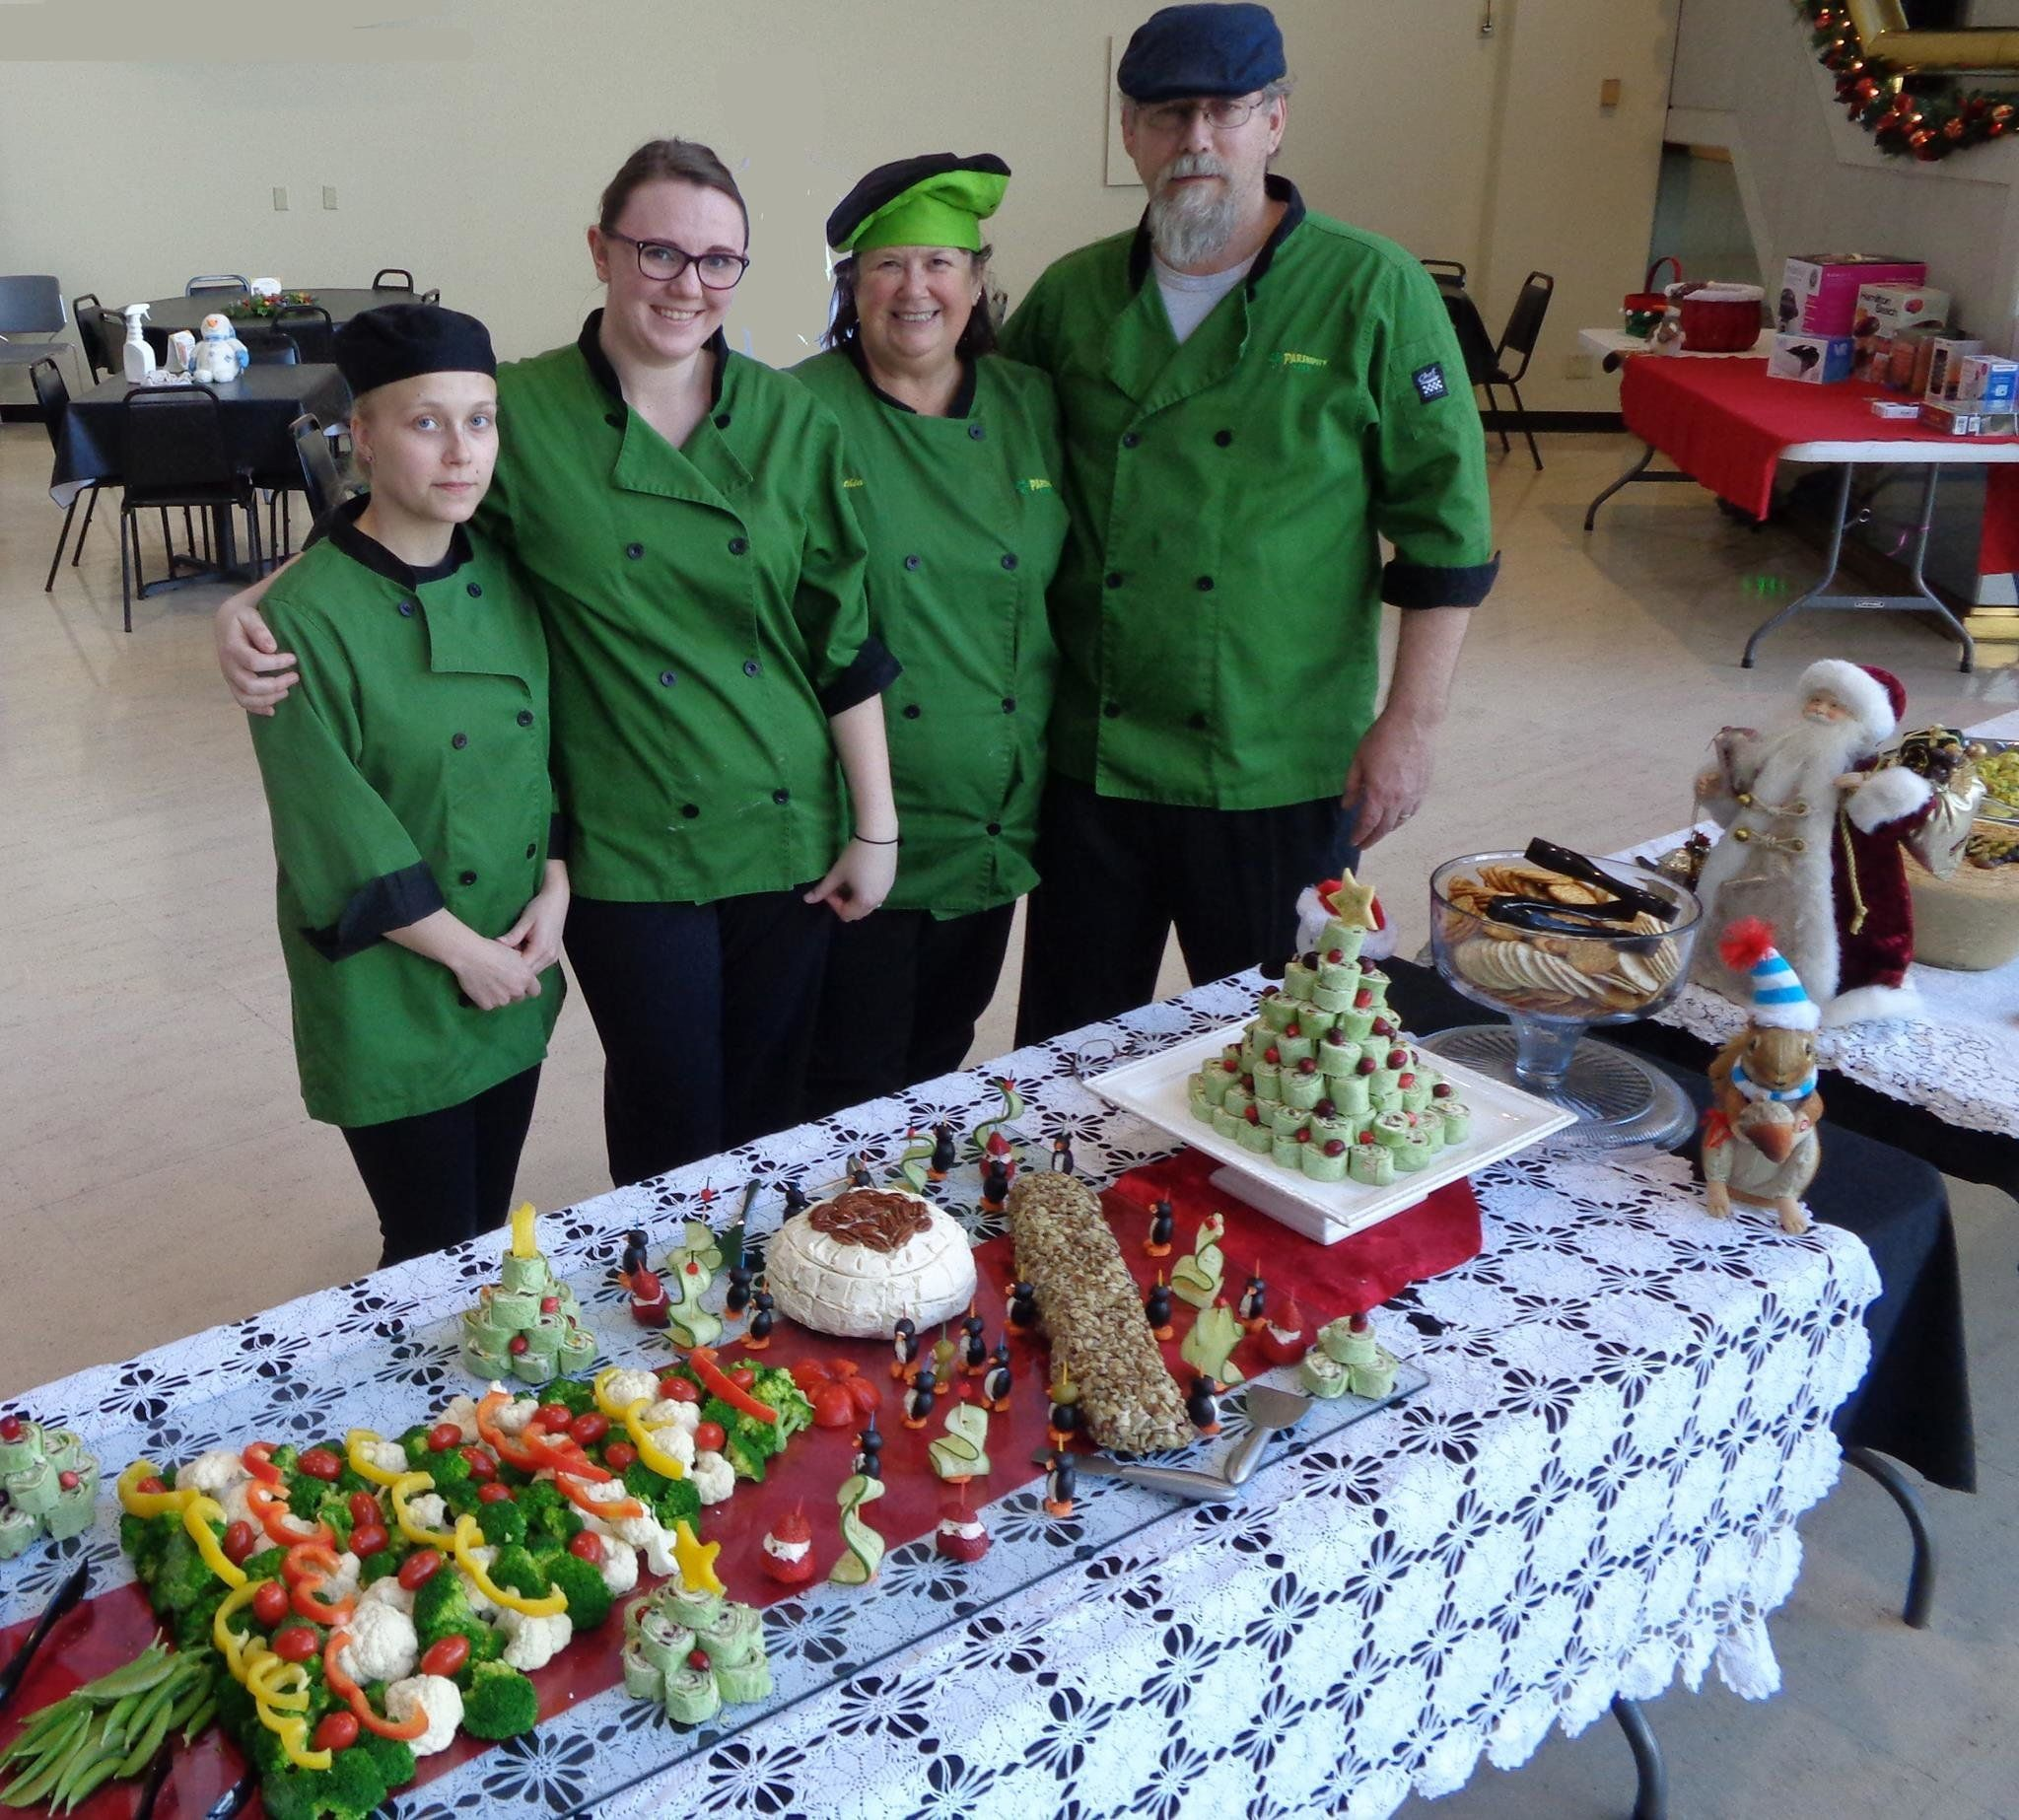 The Parsnipity Cafe has seen a steep drop in business since the shutdown began. From left to right: Rebekah Love, chef; Lydia Lett, hostess; Cynthia Wilson and Craig Bjork, owners.